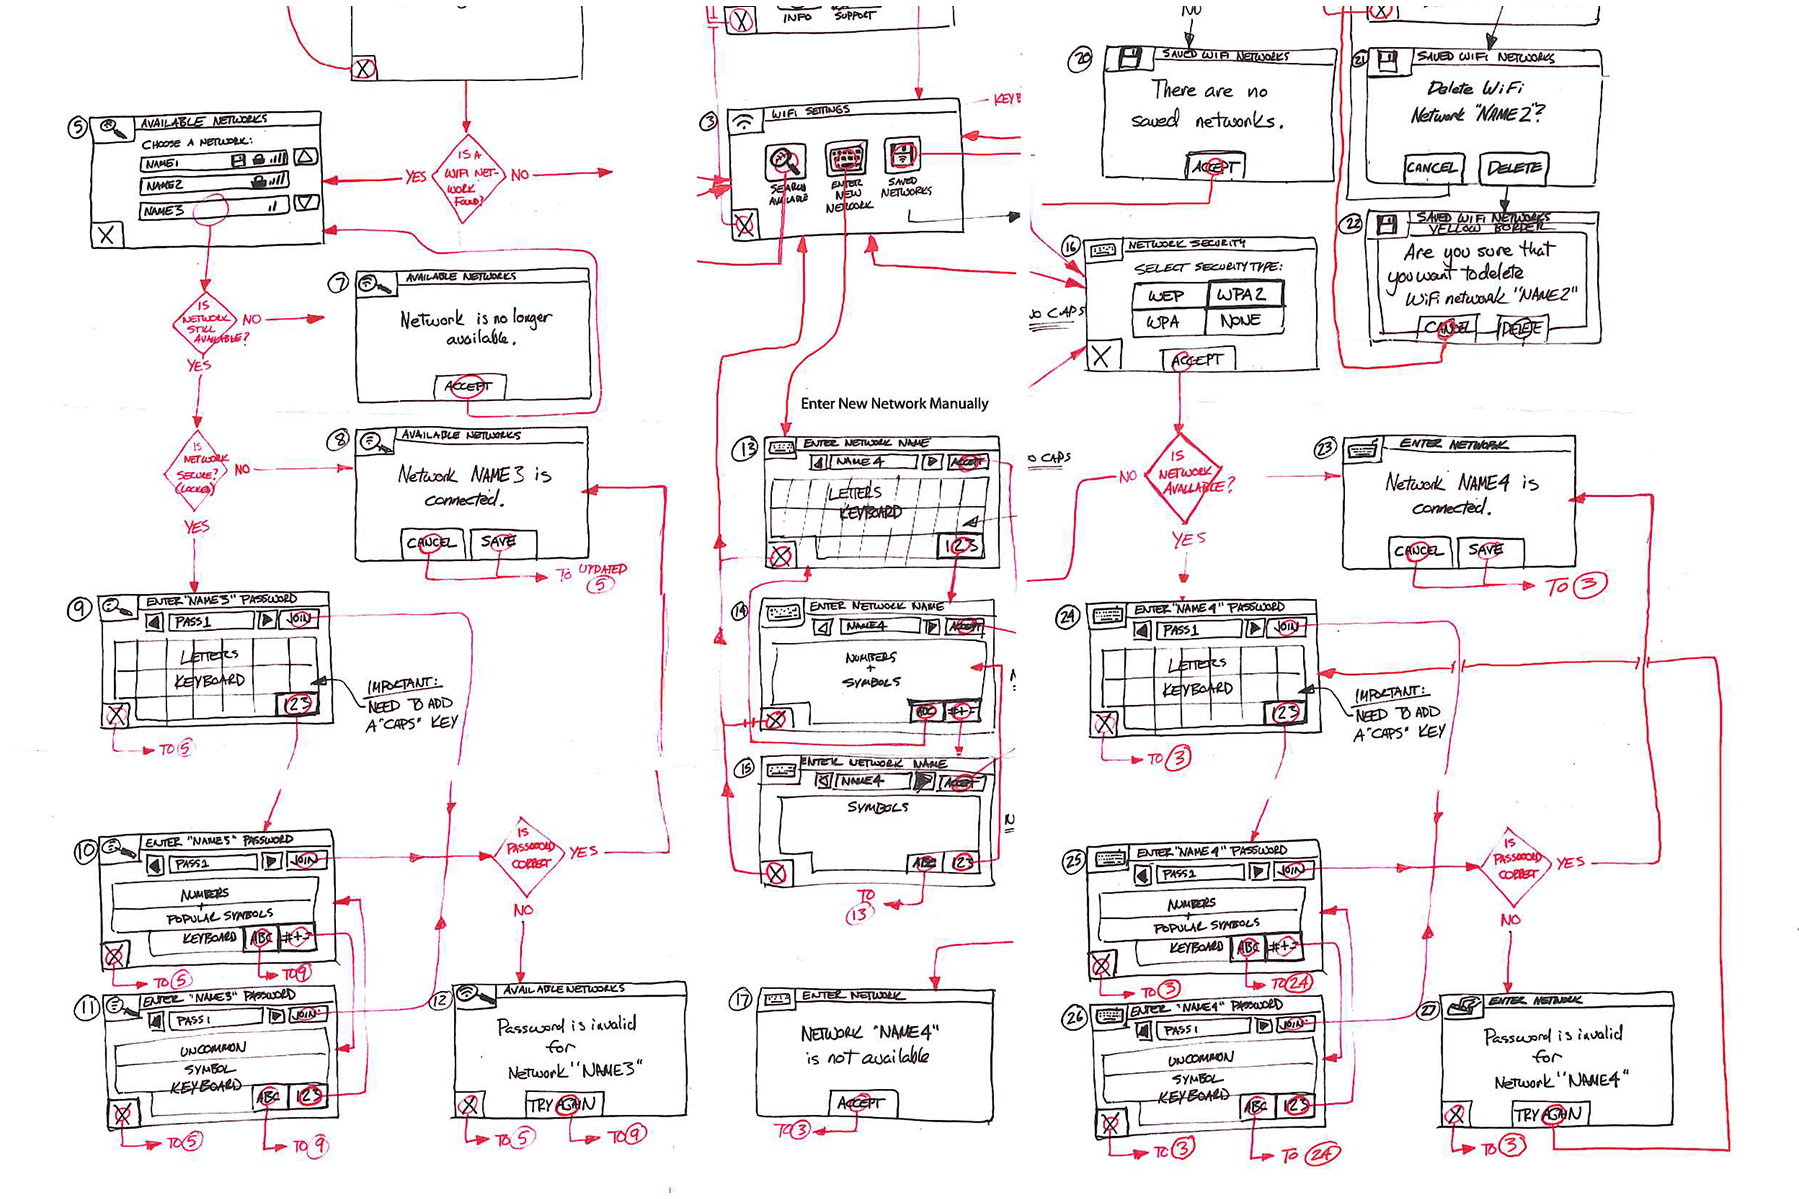 WIRE FRAME FLOW CHART